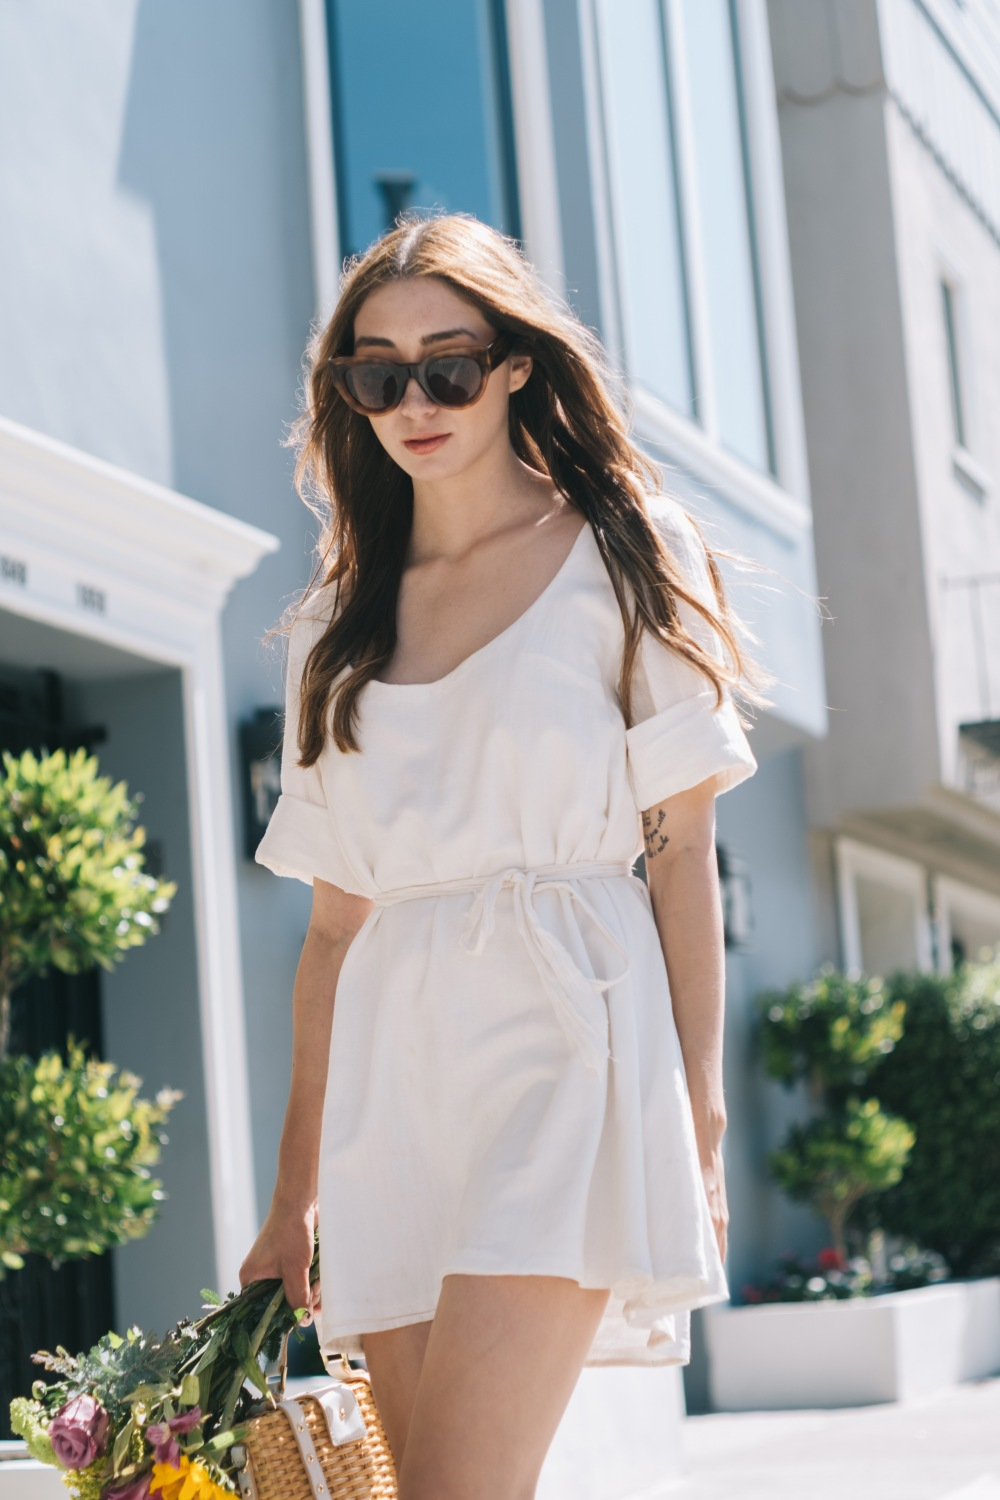 White Heat Alyssa Nicole Kylie Dress San Francisco Marina District1559